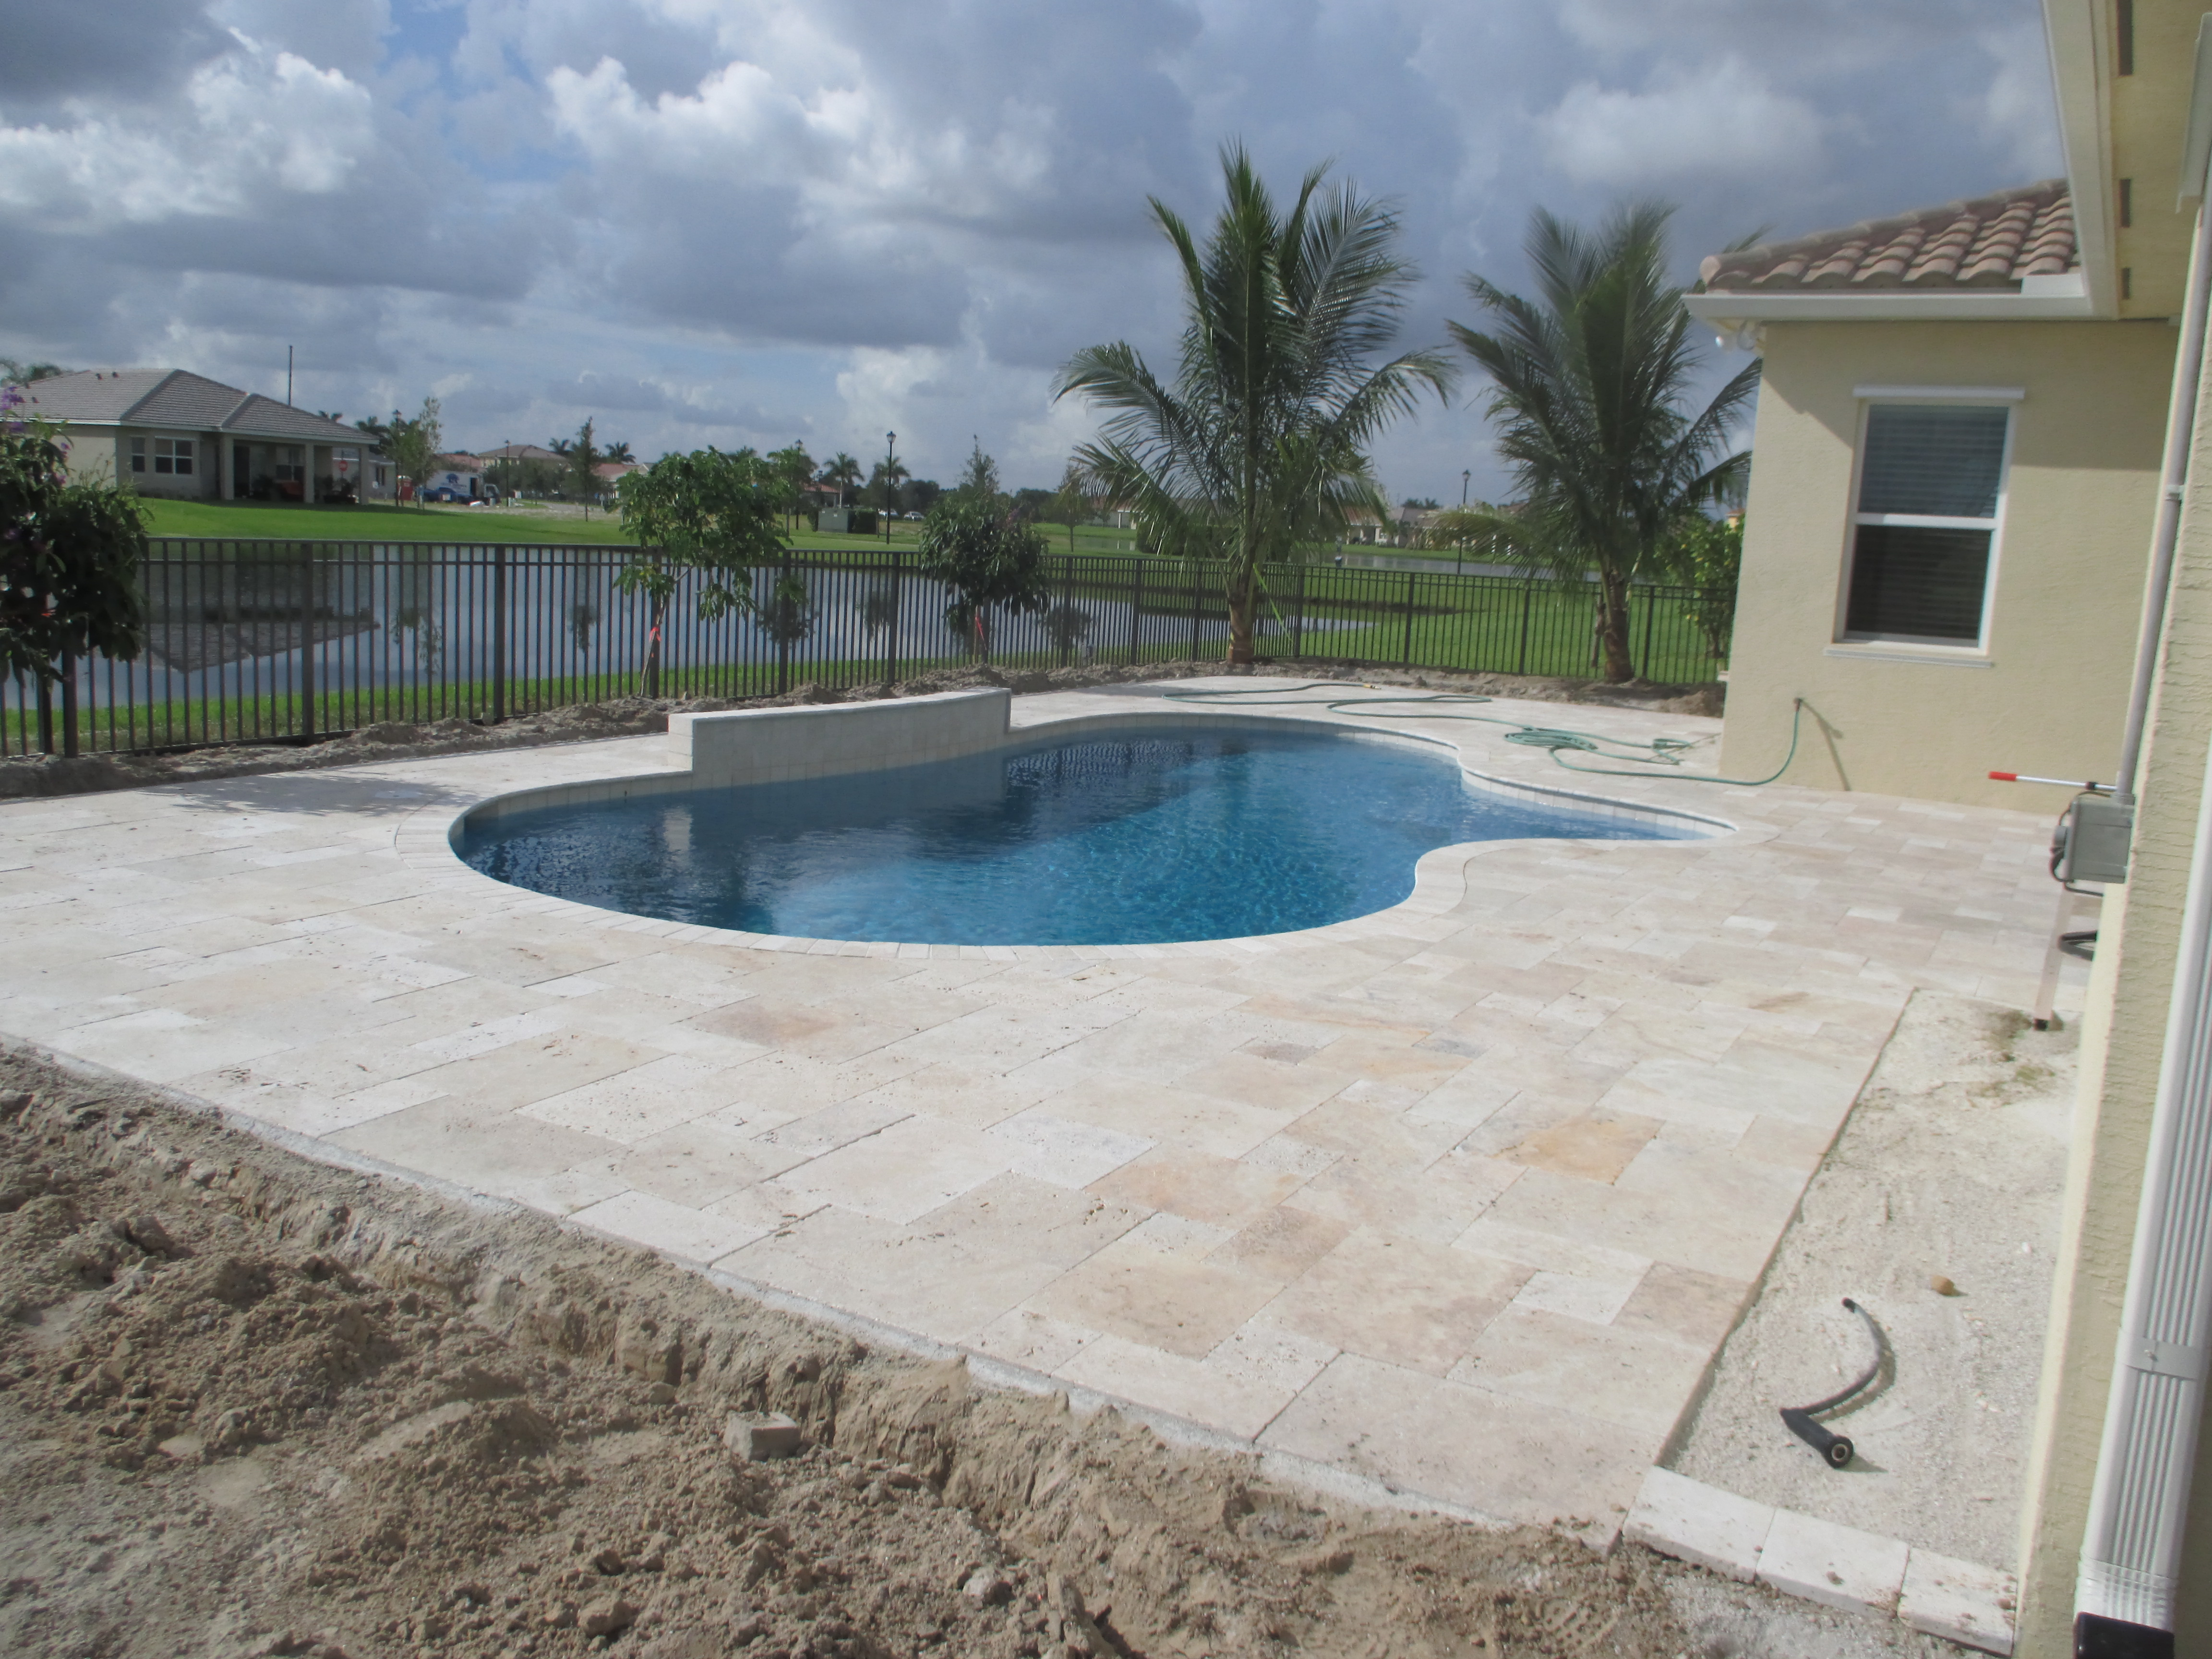 Landscape for new swimming pool during installation royal palm beach universal landscape inc - Palm beach swimming pool ...